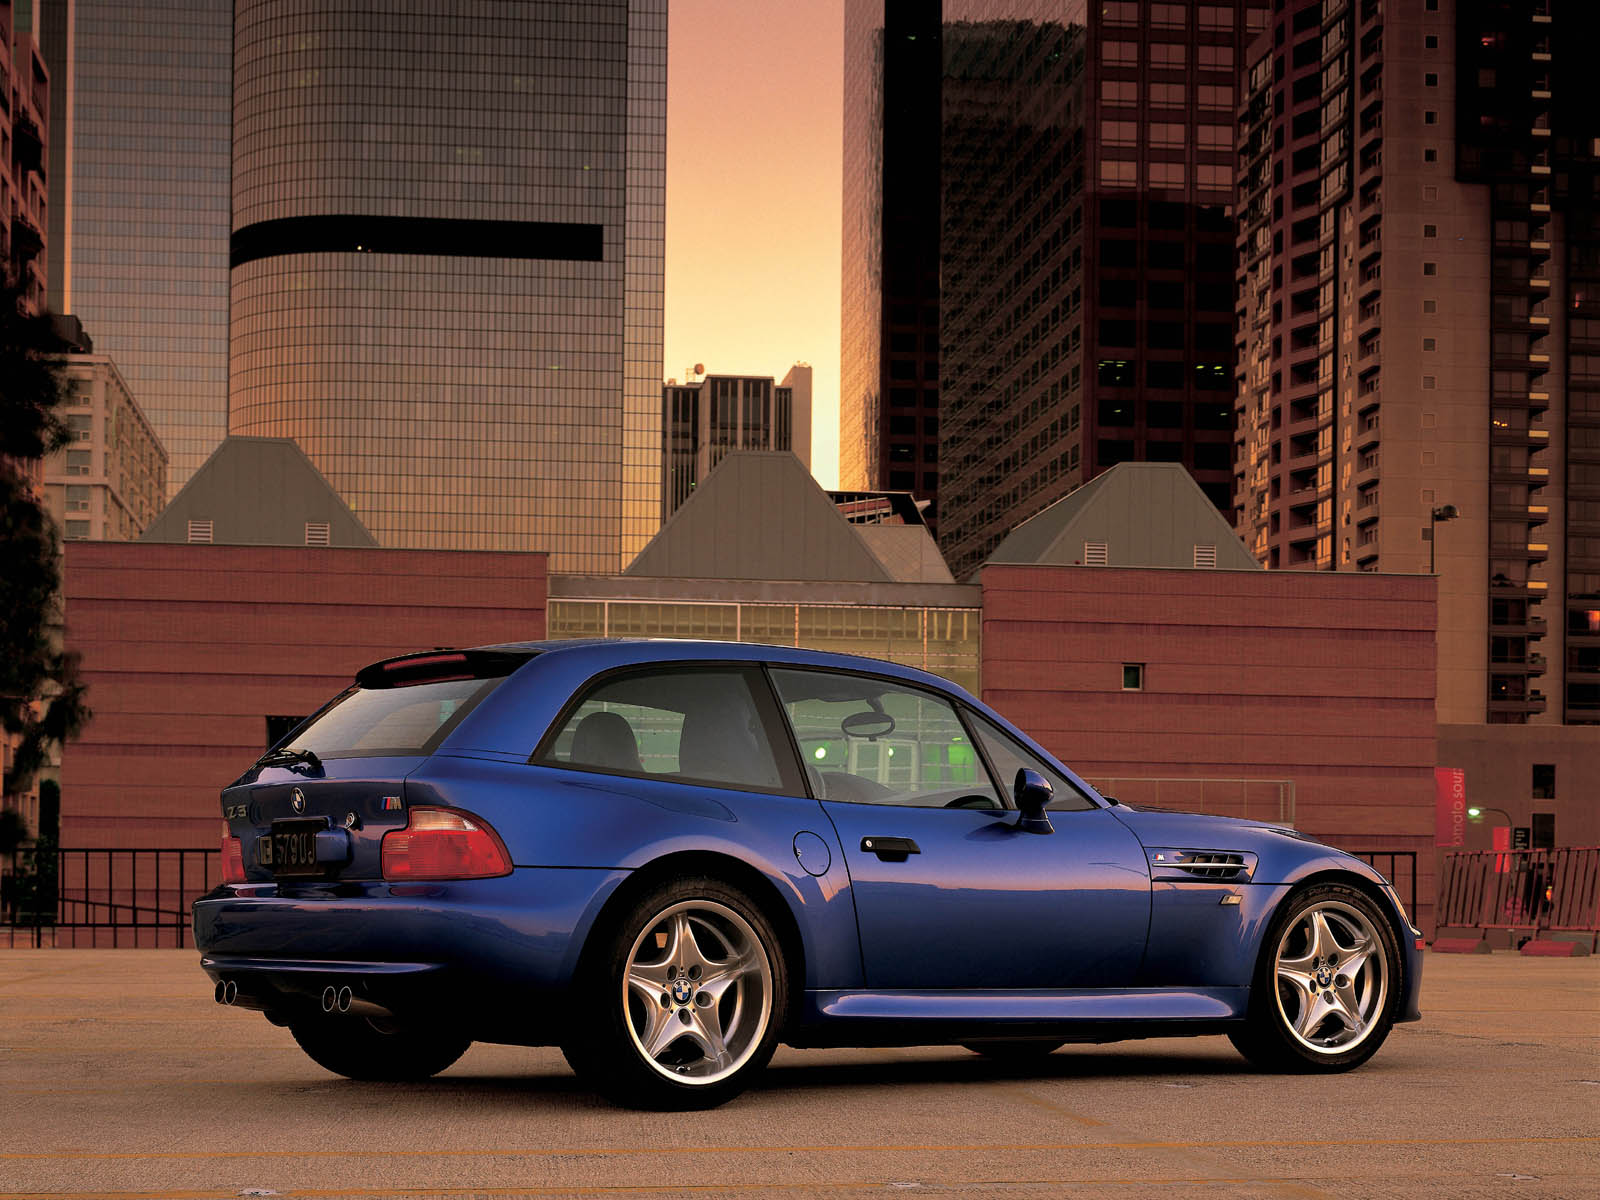 bmw z3 m coupe picture 10285 bmw photo gallery. Black Bedroom Furniture Sets. Home Design Ideas